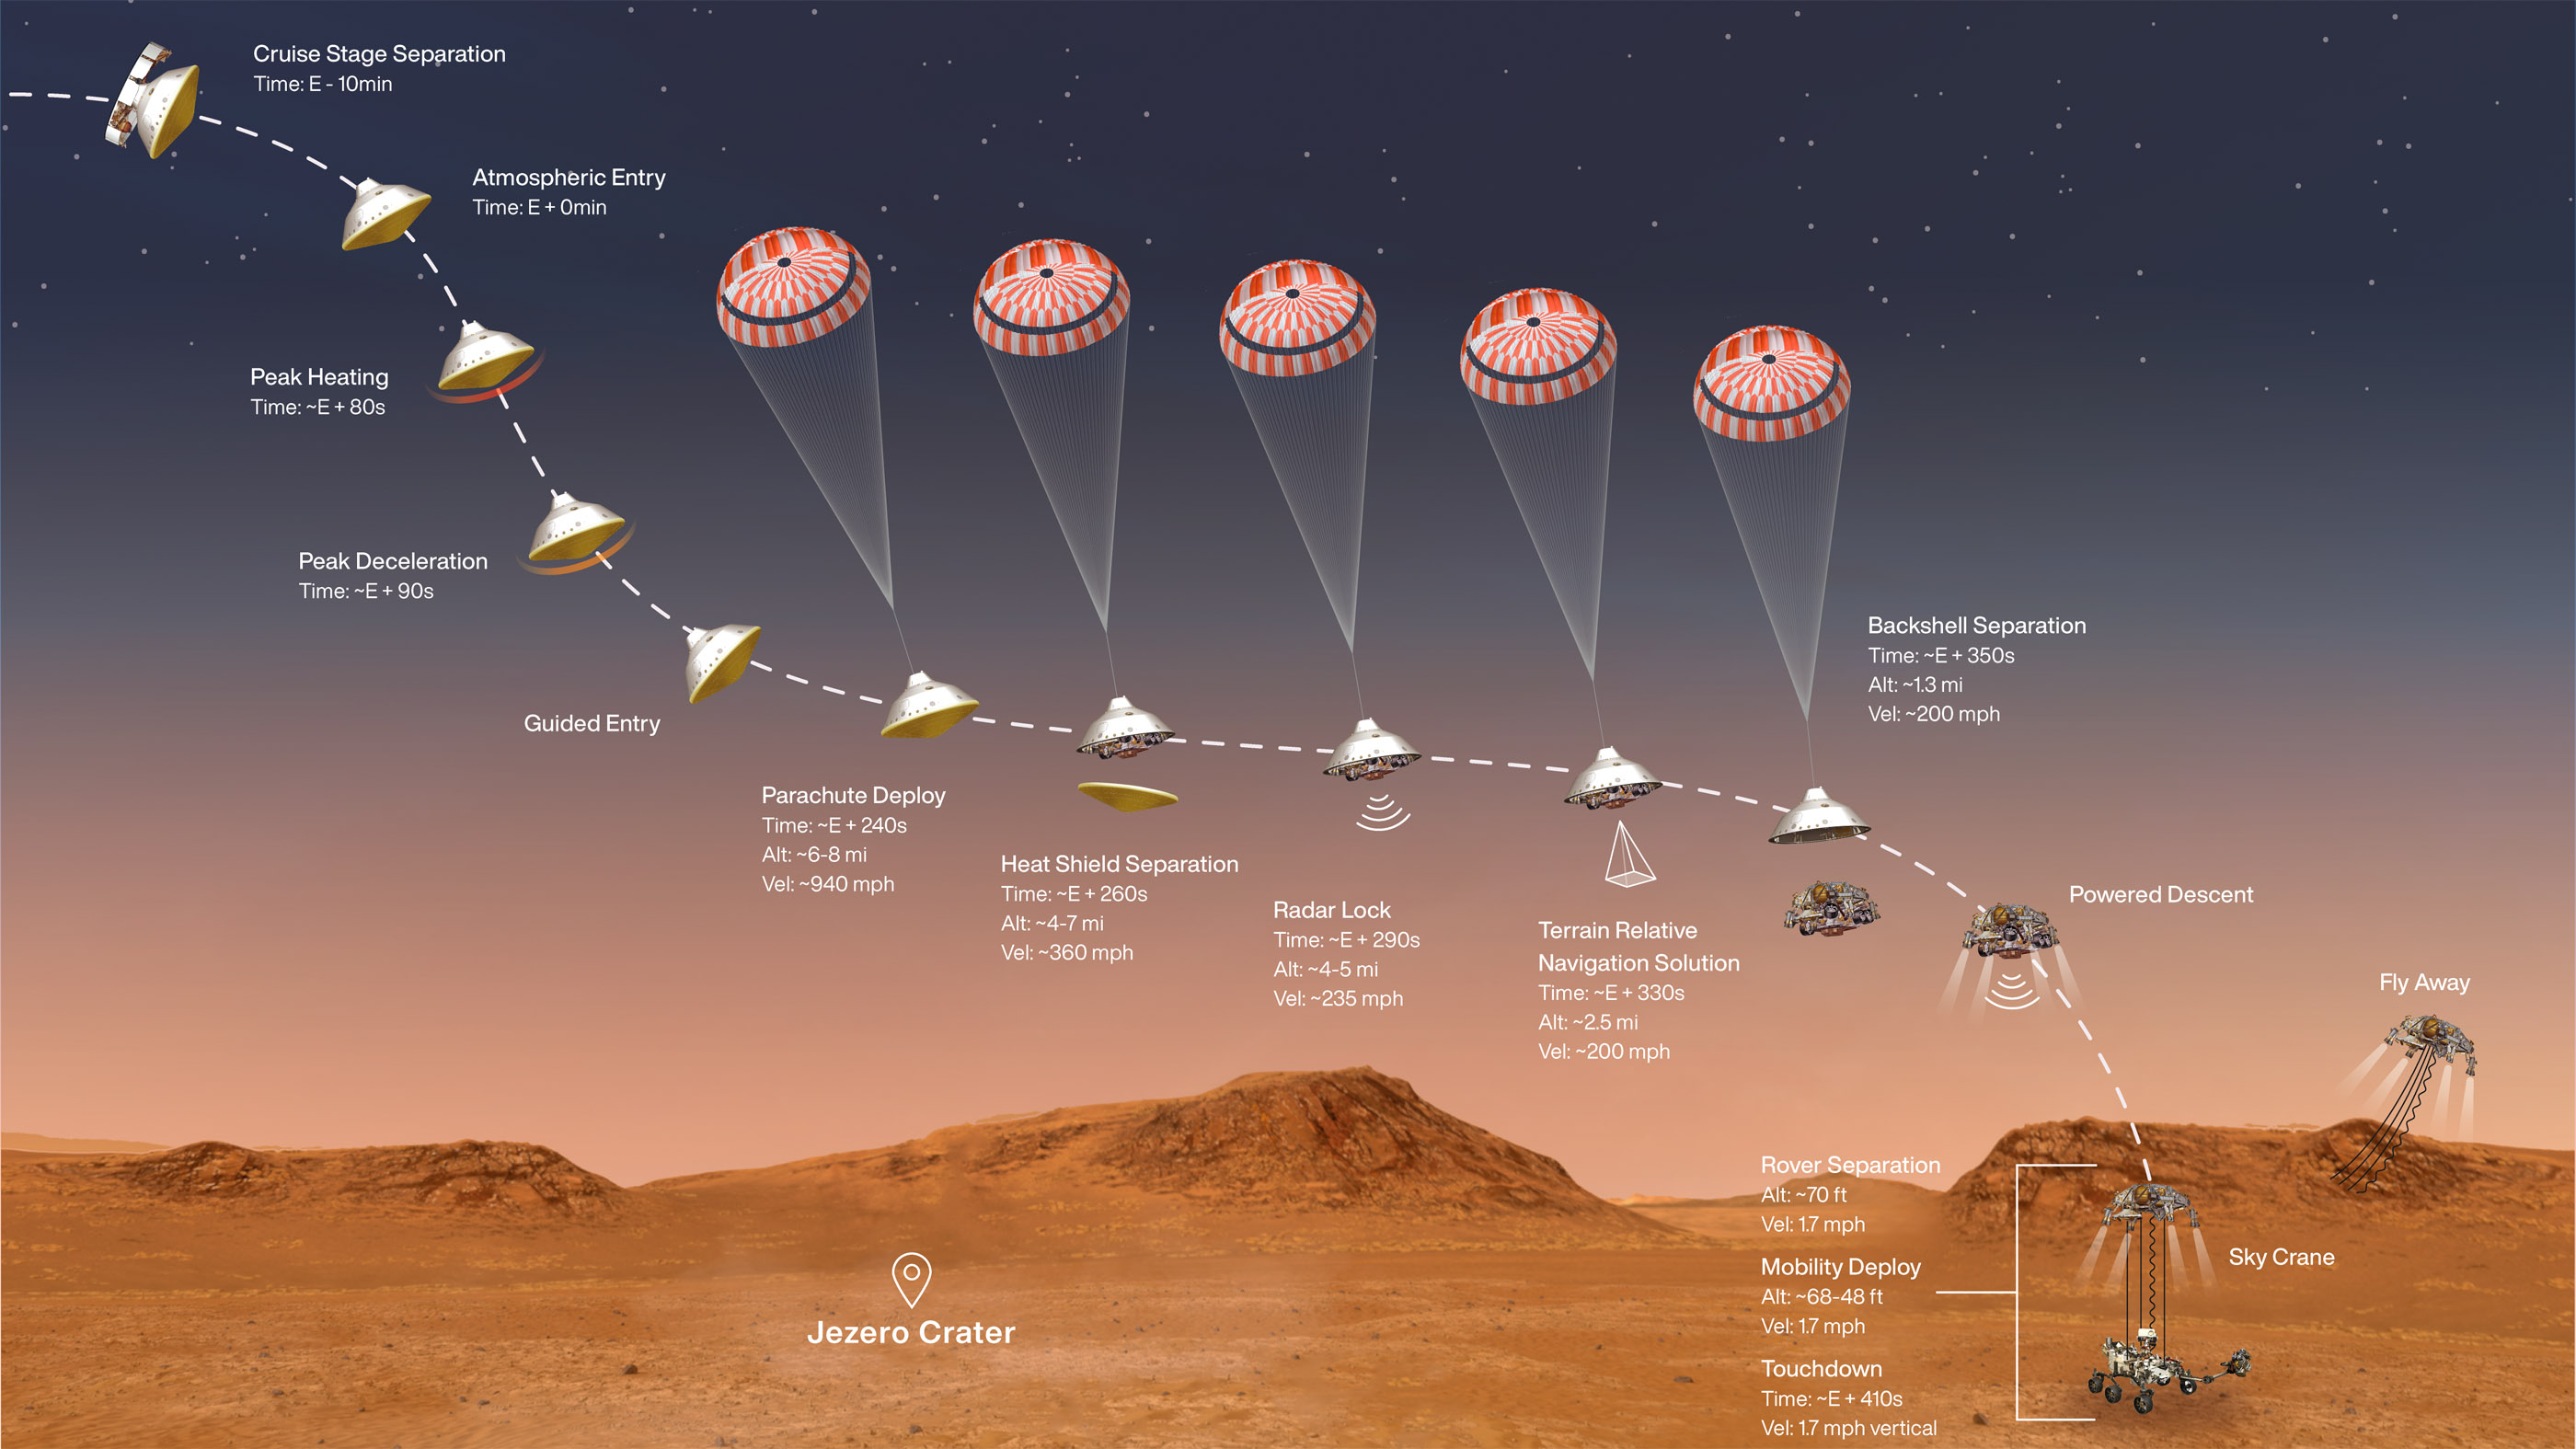 A diagram of the key steps in the Mars 2020 mission's entry, descent and landing sequence of Feb. 18, 2021.